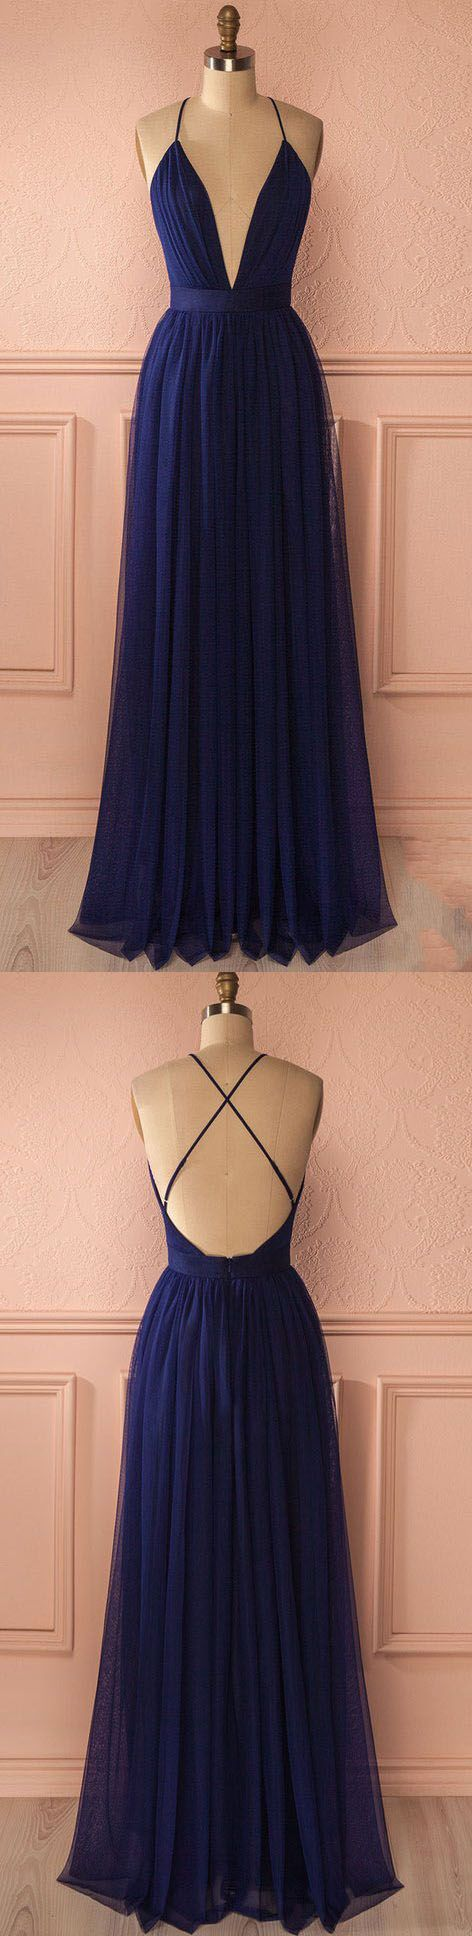 Sexy Navy V Neck Backless Prom Dress, Simple Long Evening Dress For Woman